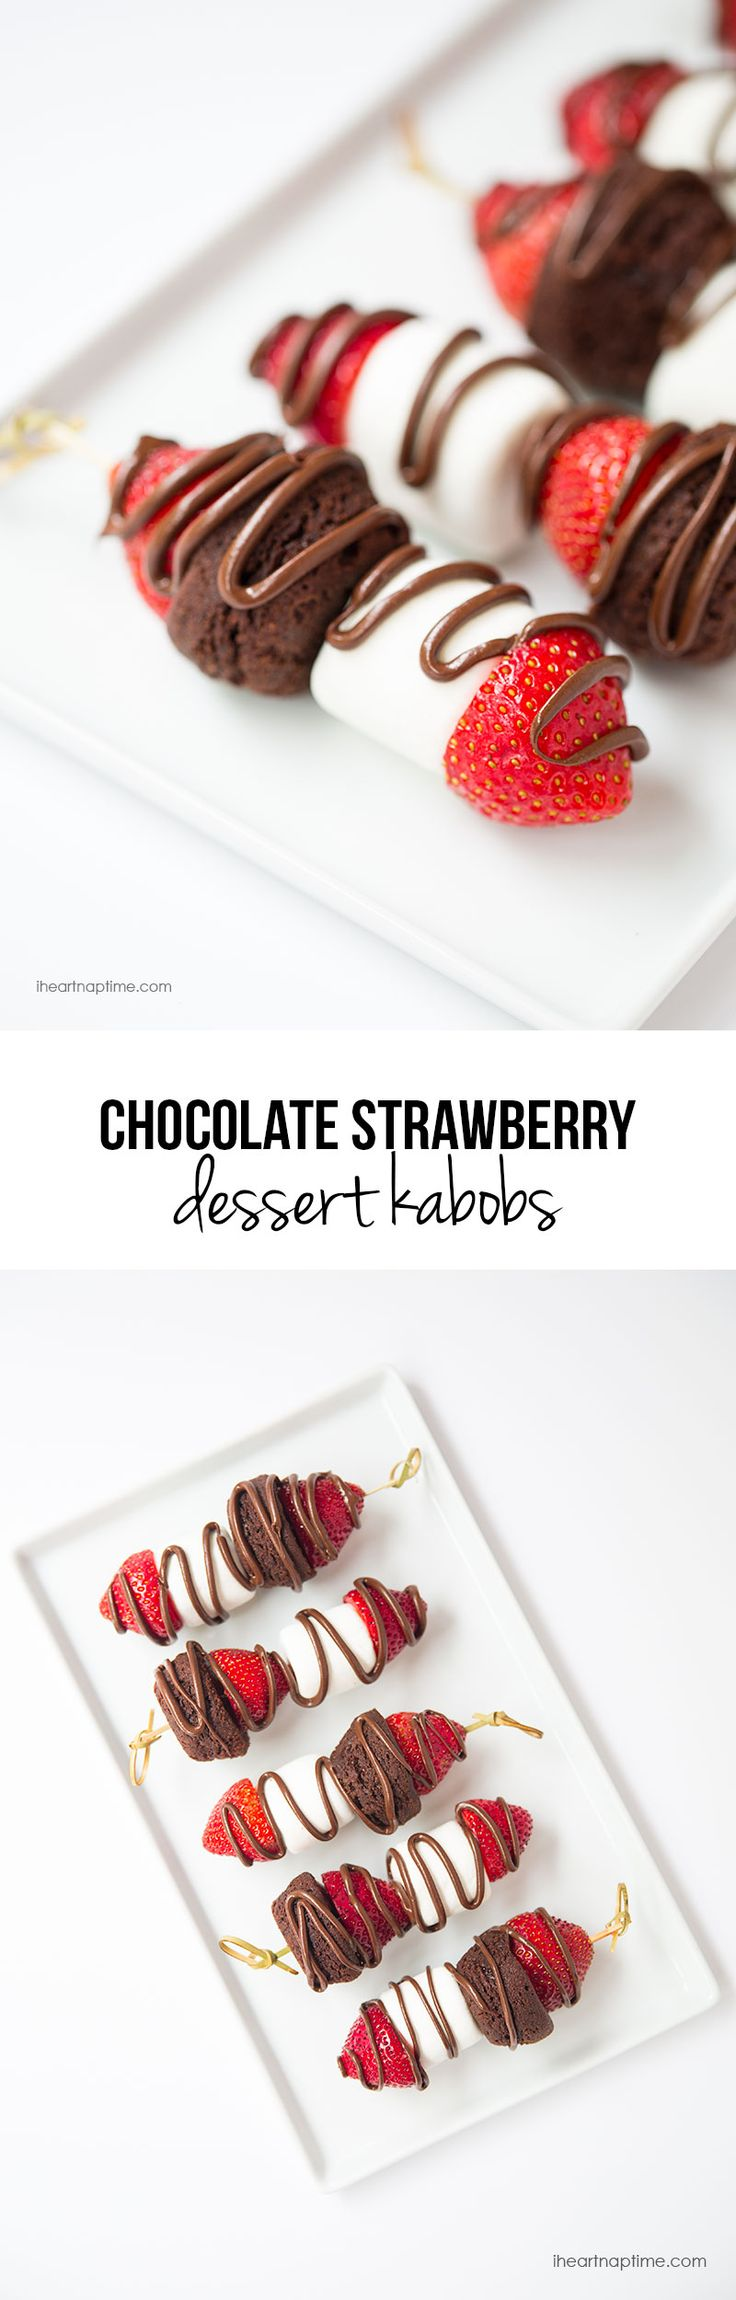 Chocolate strawberry dessert kabobs on iheartnaptime.com -EASY and delicious!